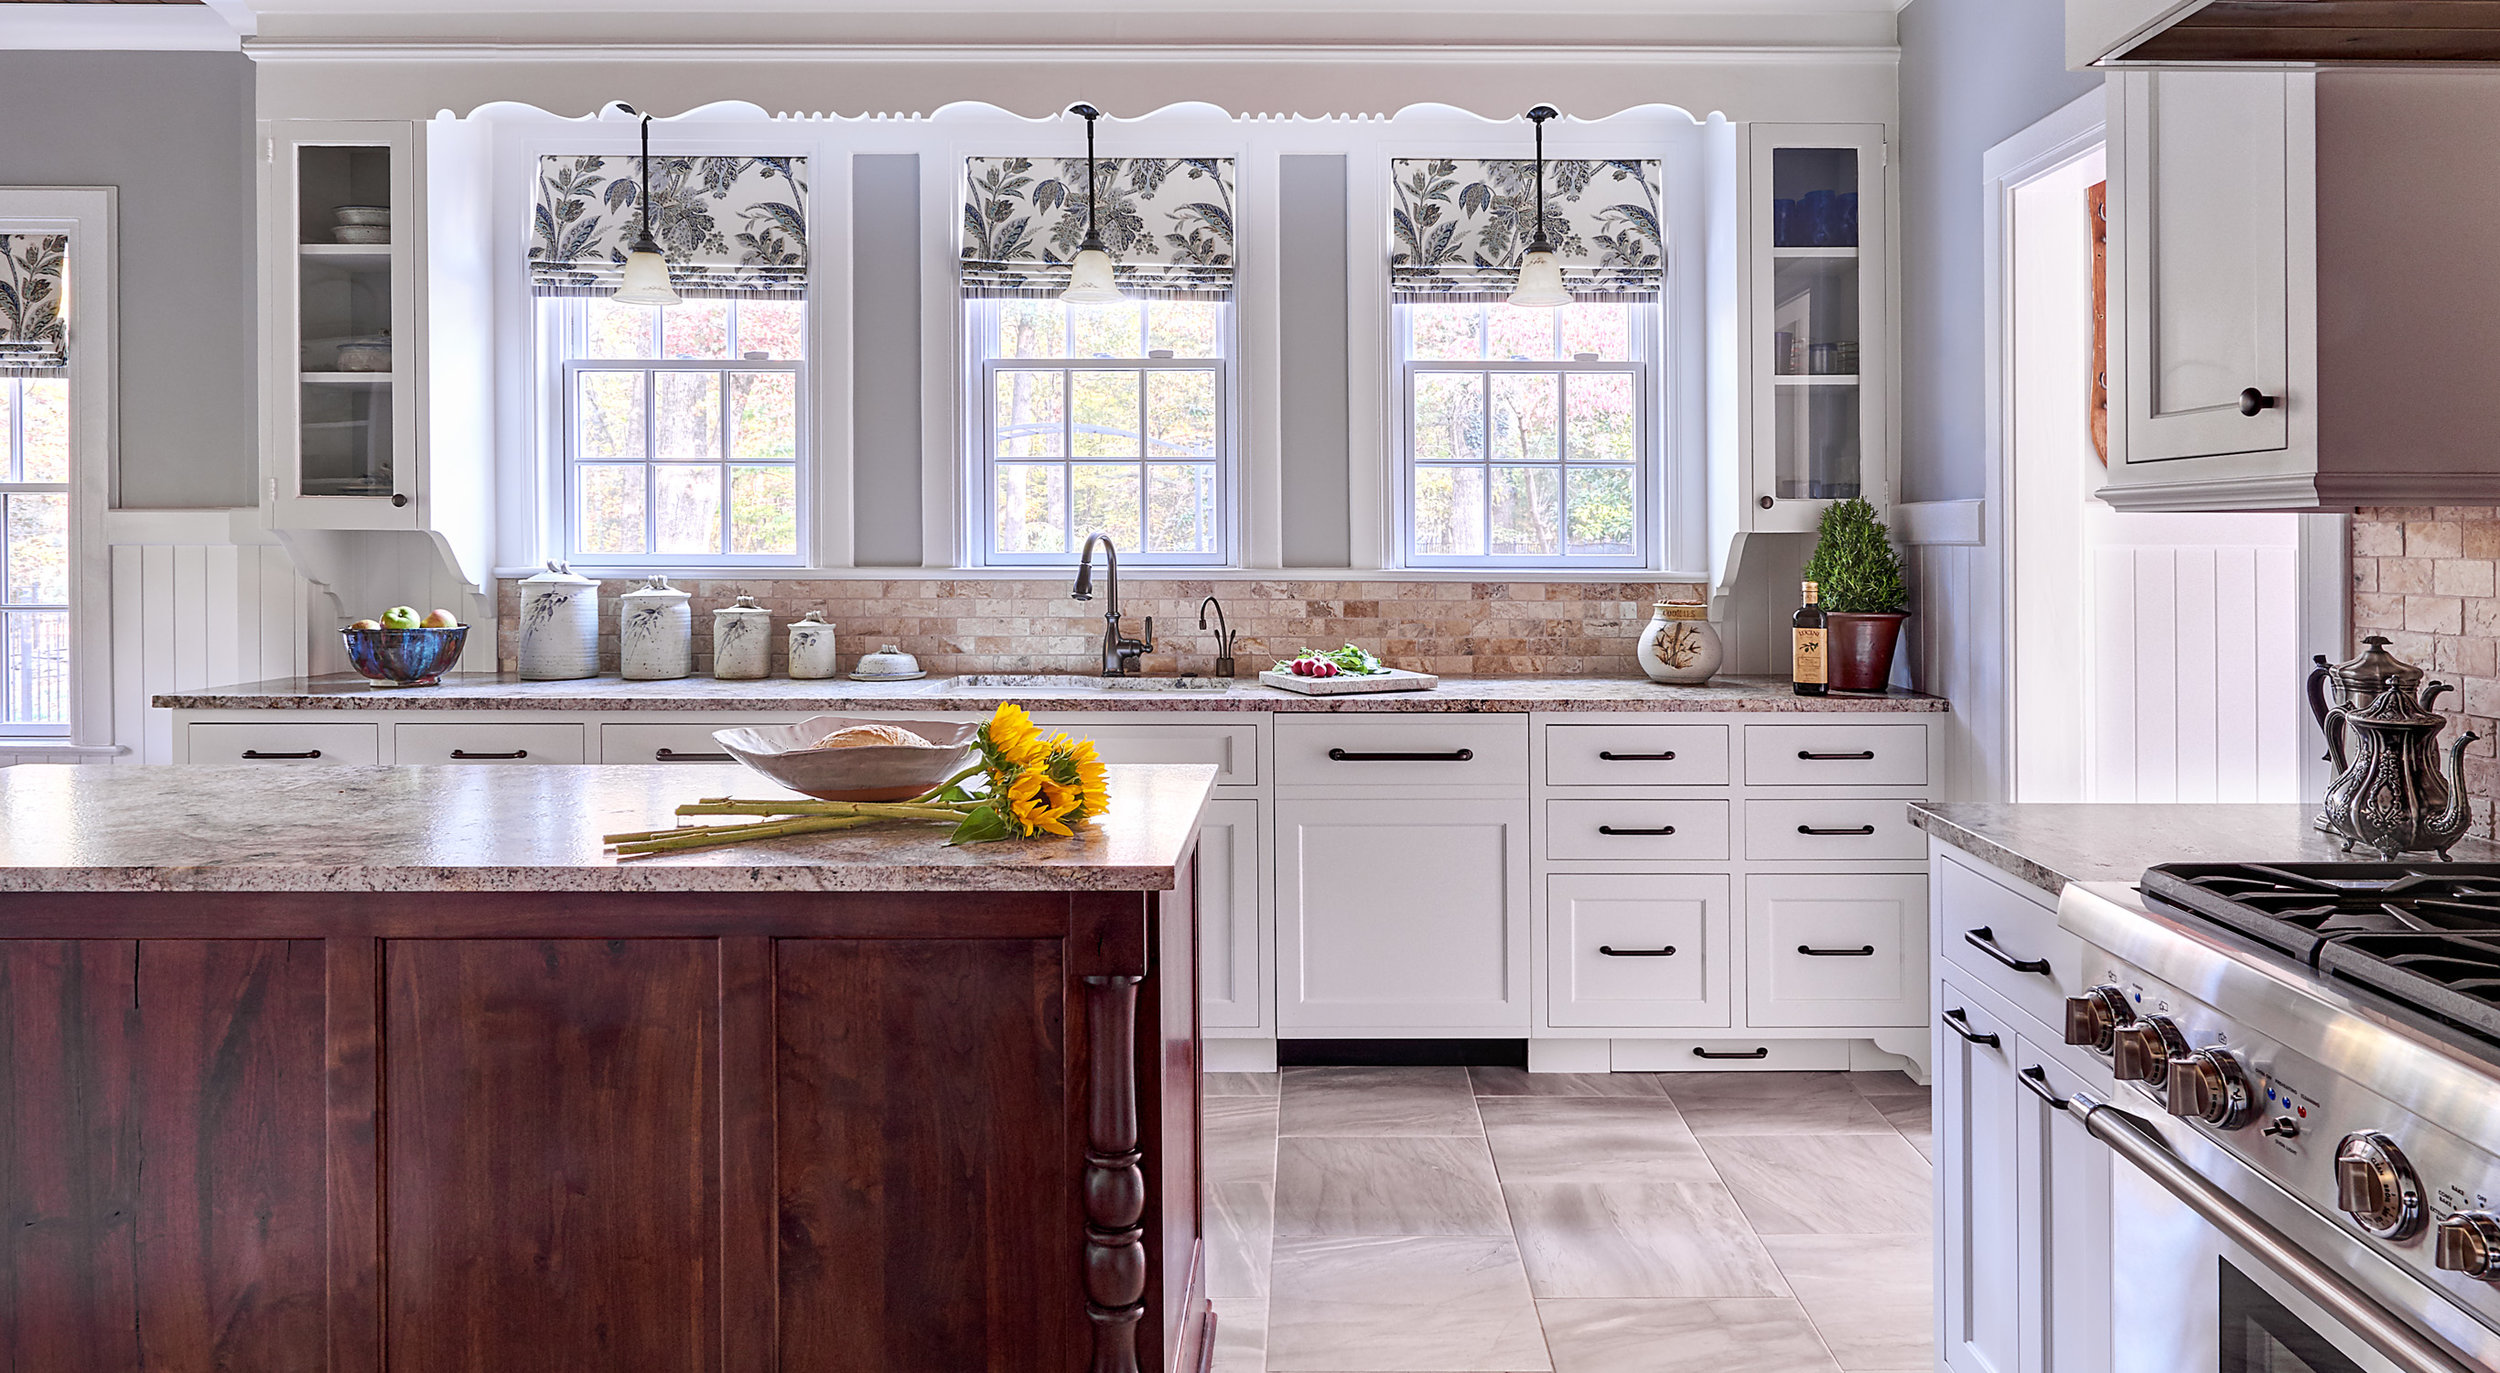 1920's historic home kitchen remodel with white cabinets, scalloped wood valance, roman window shades, tile floor and glass display cabinets